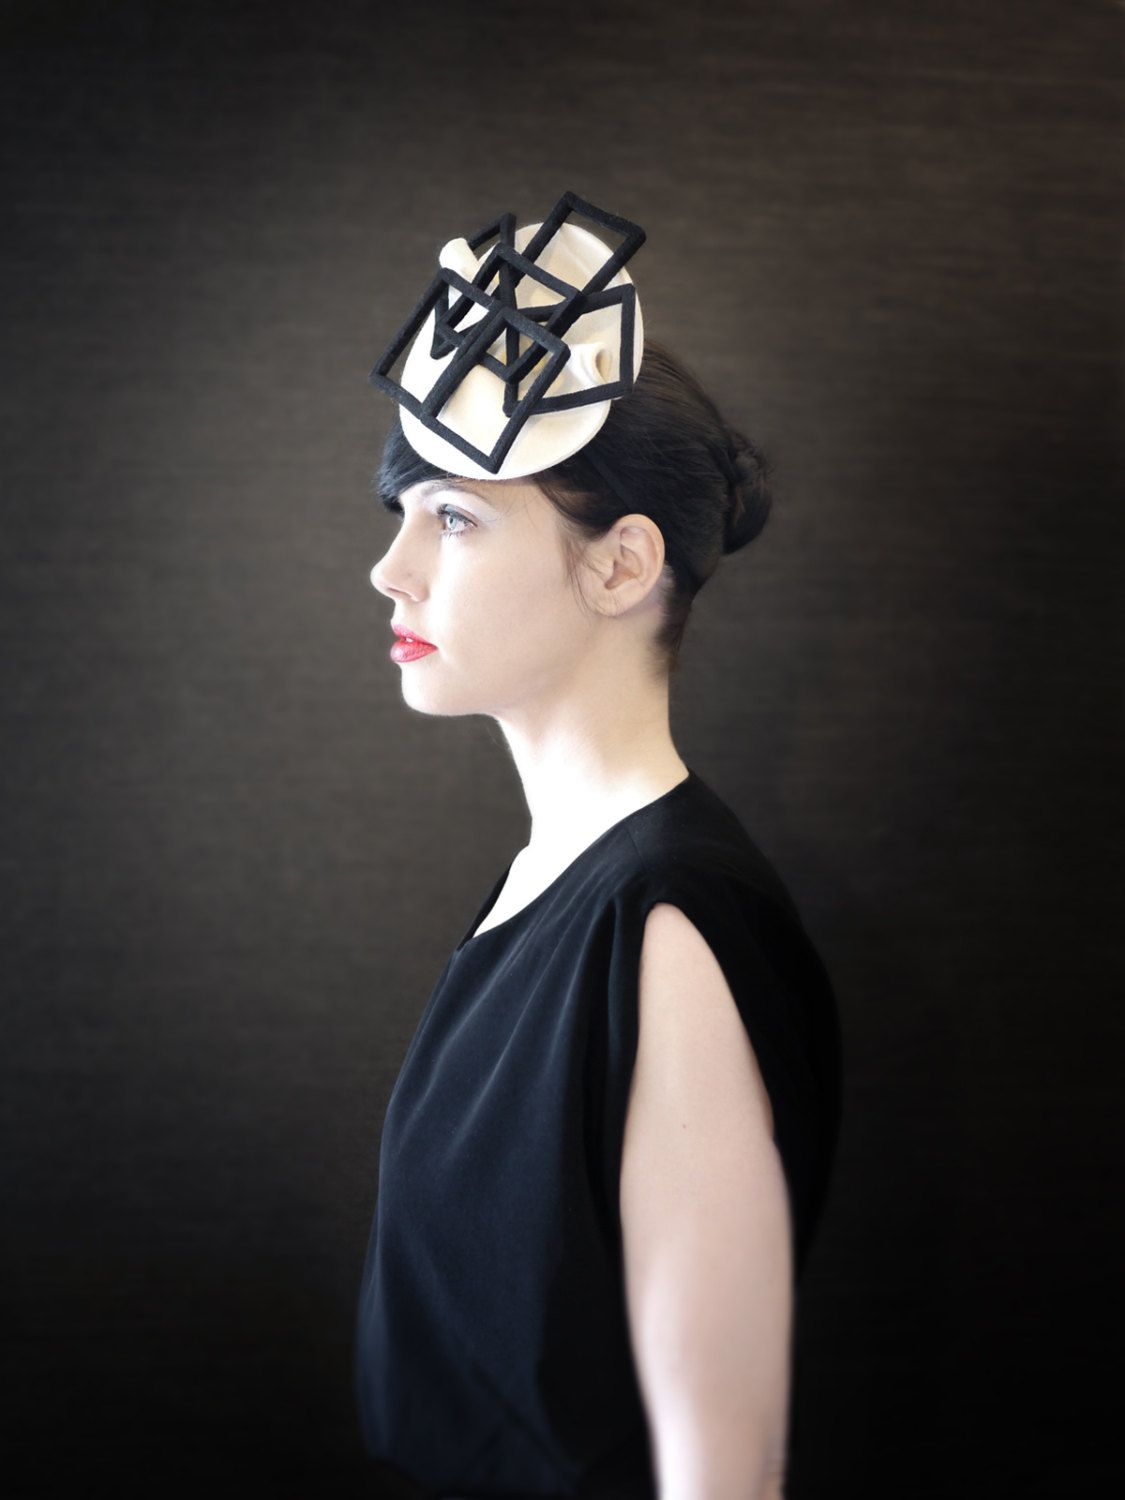 ff880c3737f Cream Felt Hat with Black Geometric Fan Accent - Fractal Series - Made to  Order by pookaqueen on Etsy